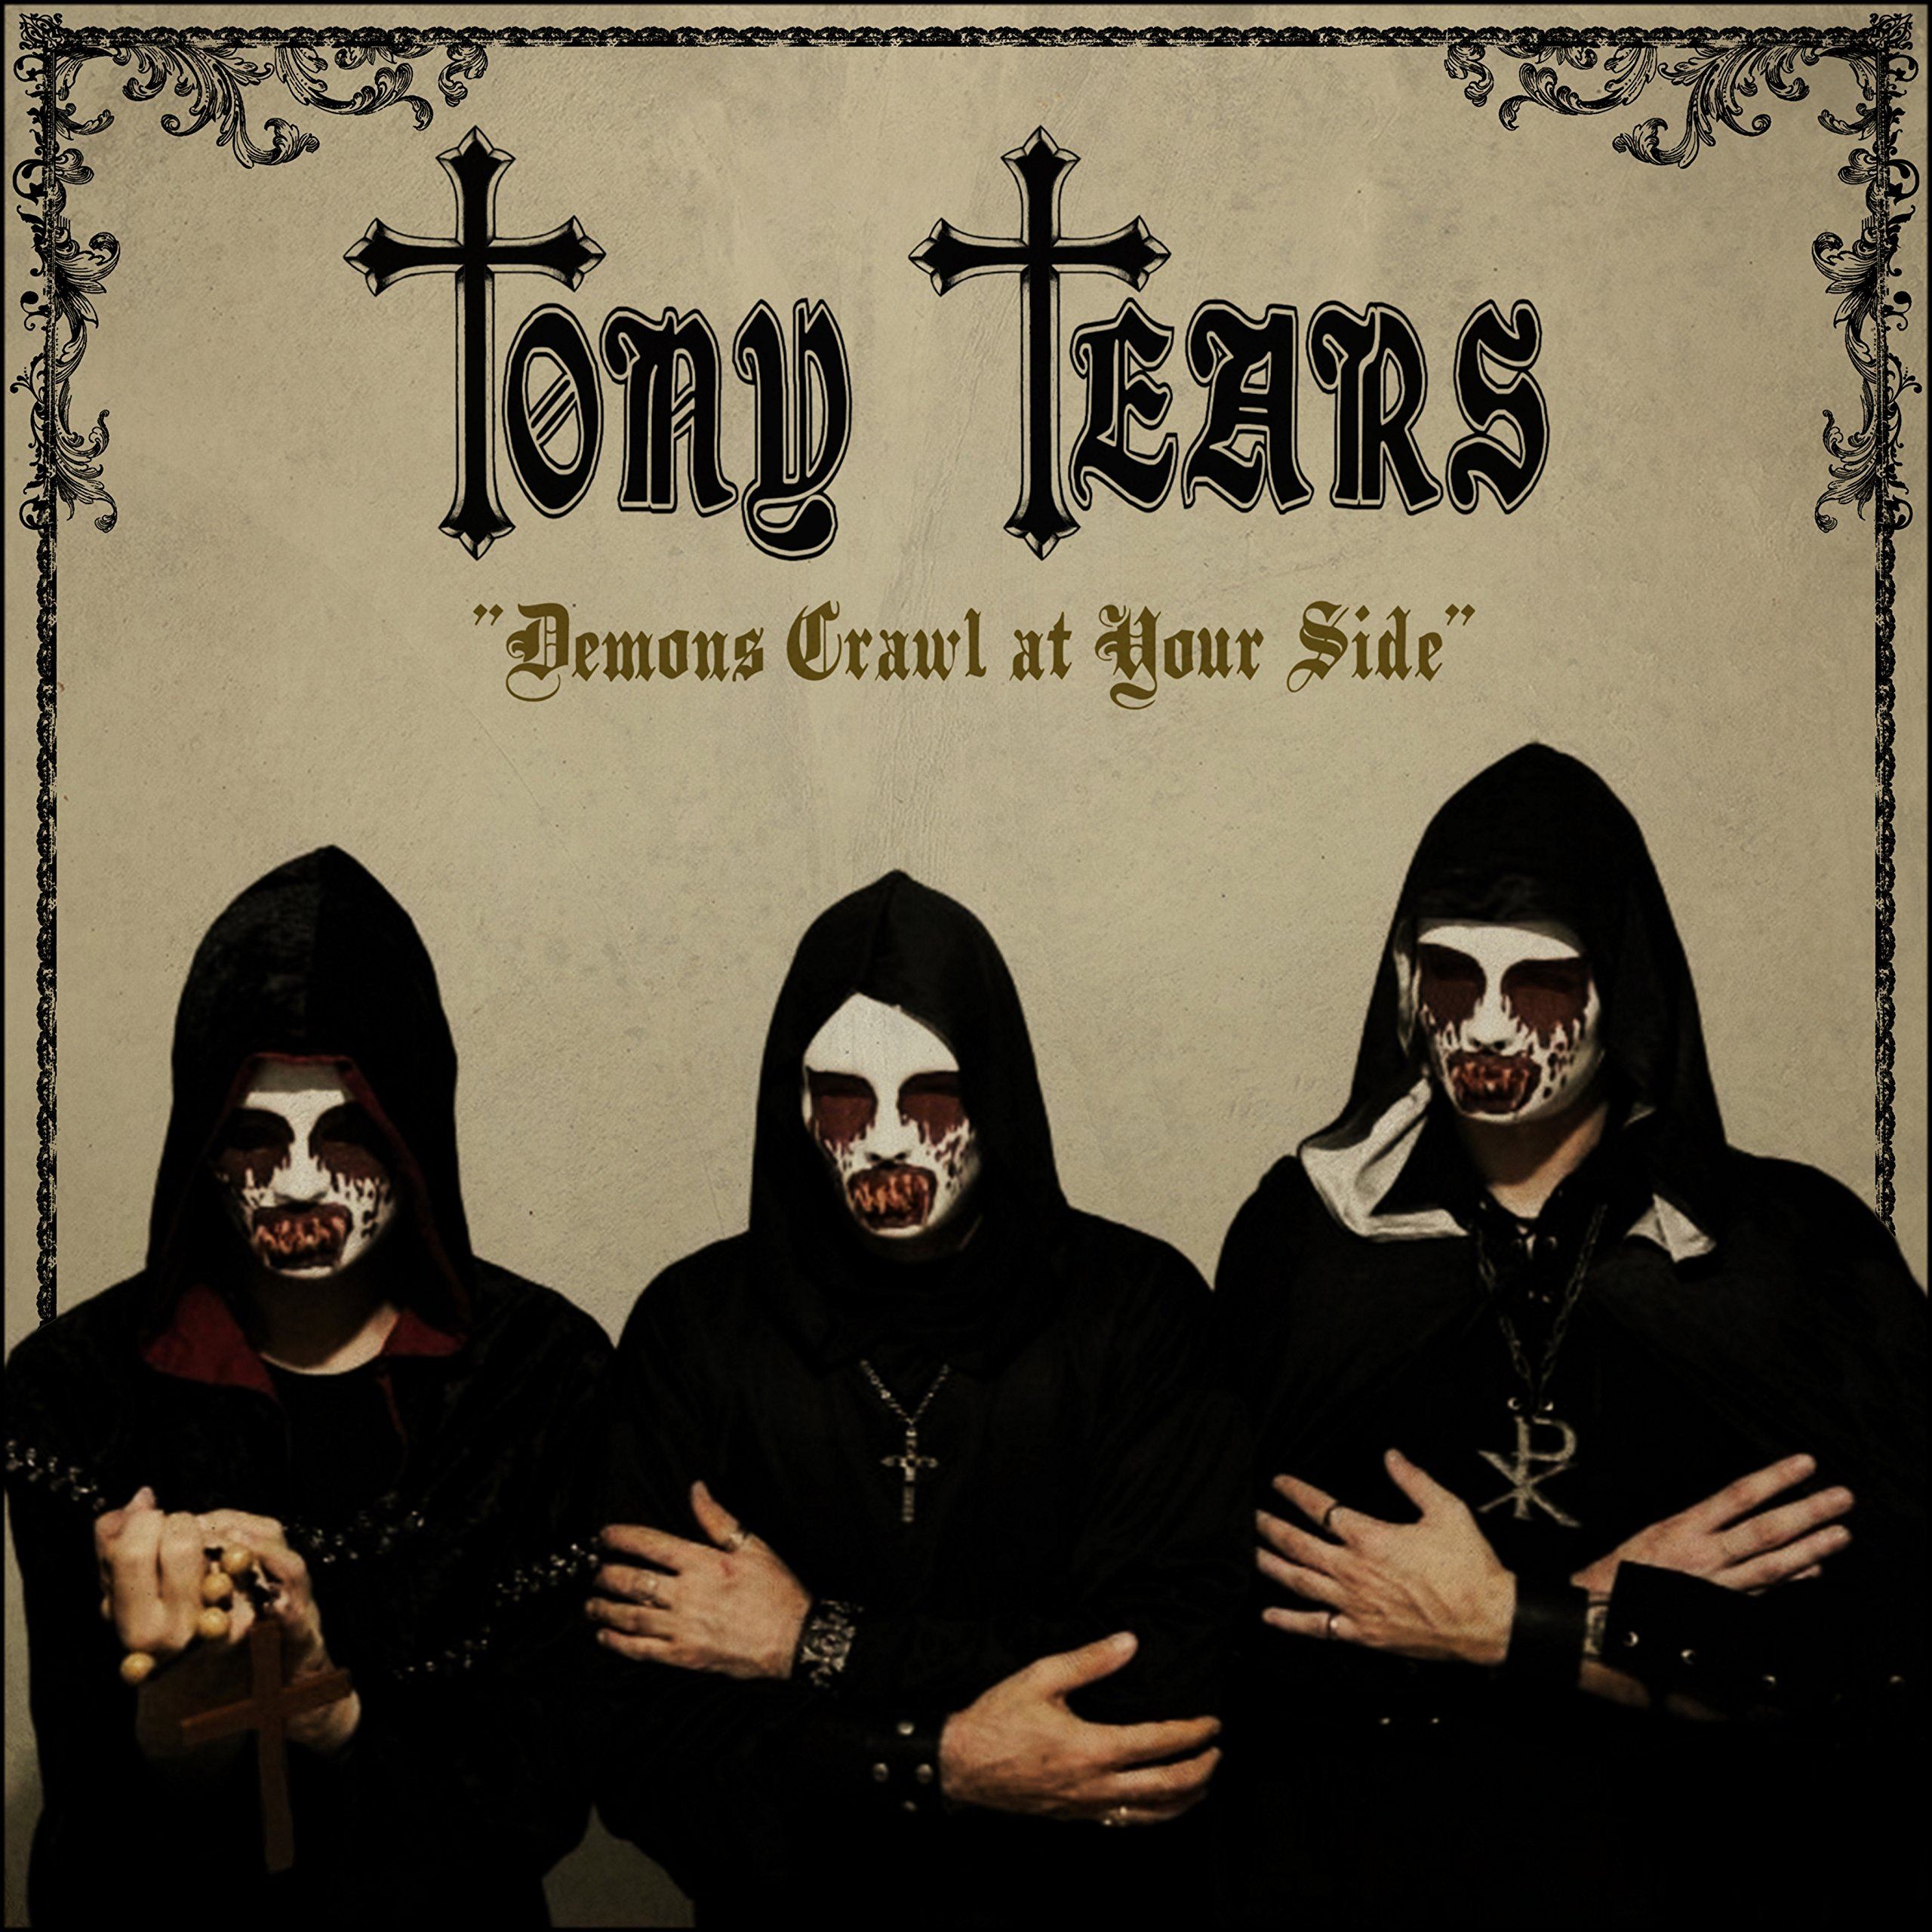 CD : Tony Tears - Demons Crawl At Your Side (CD)